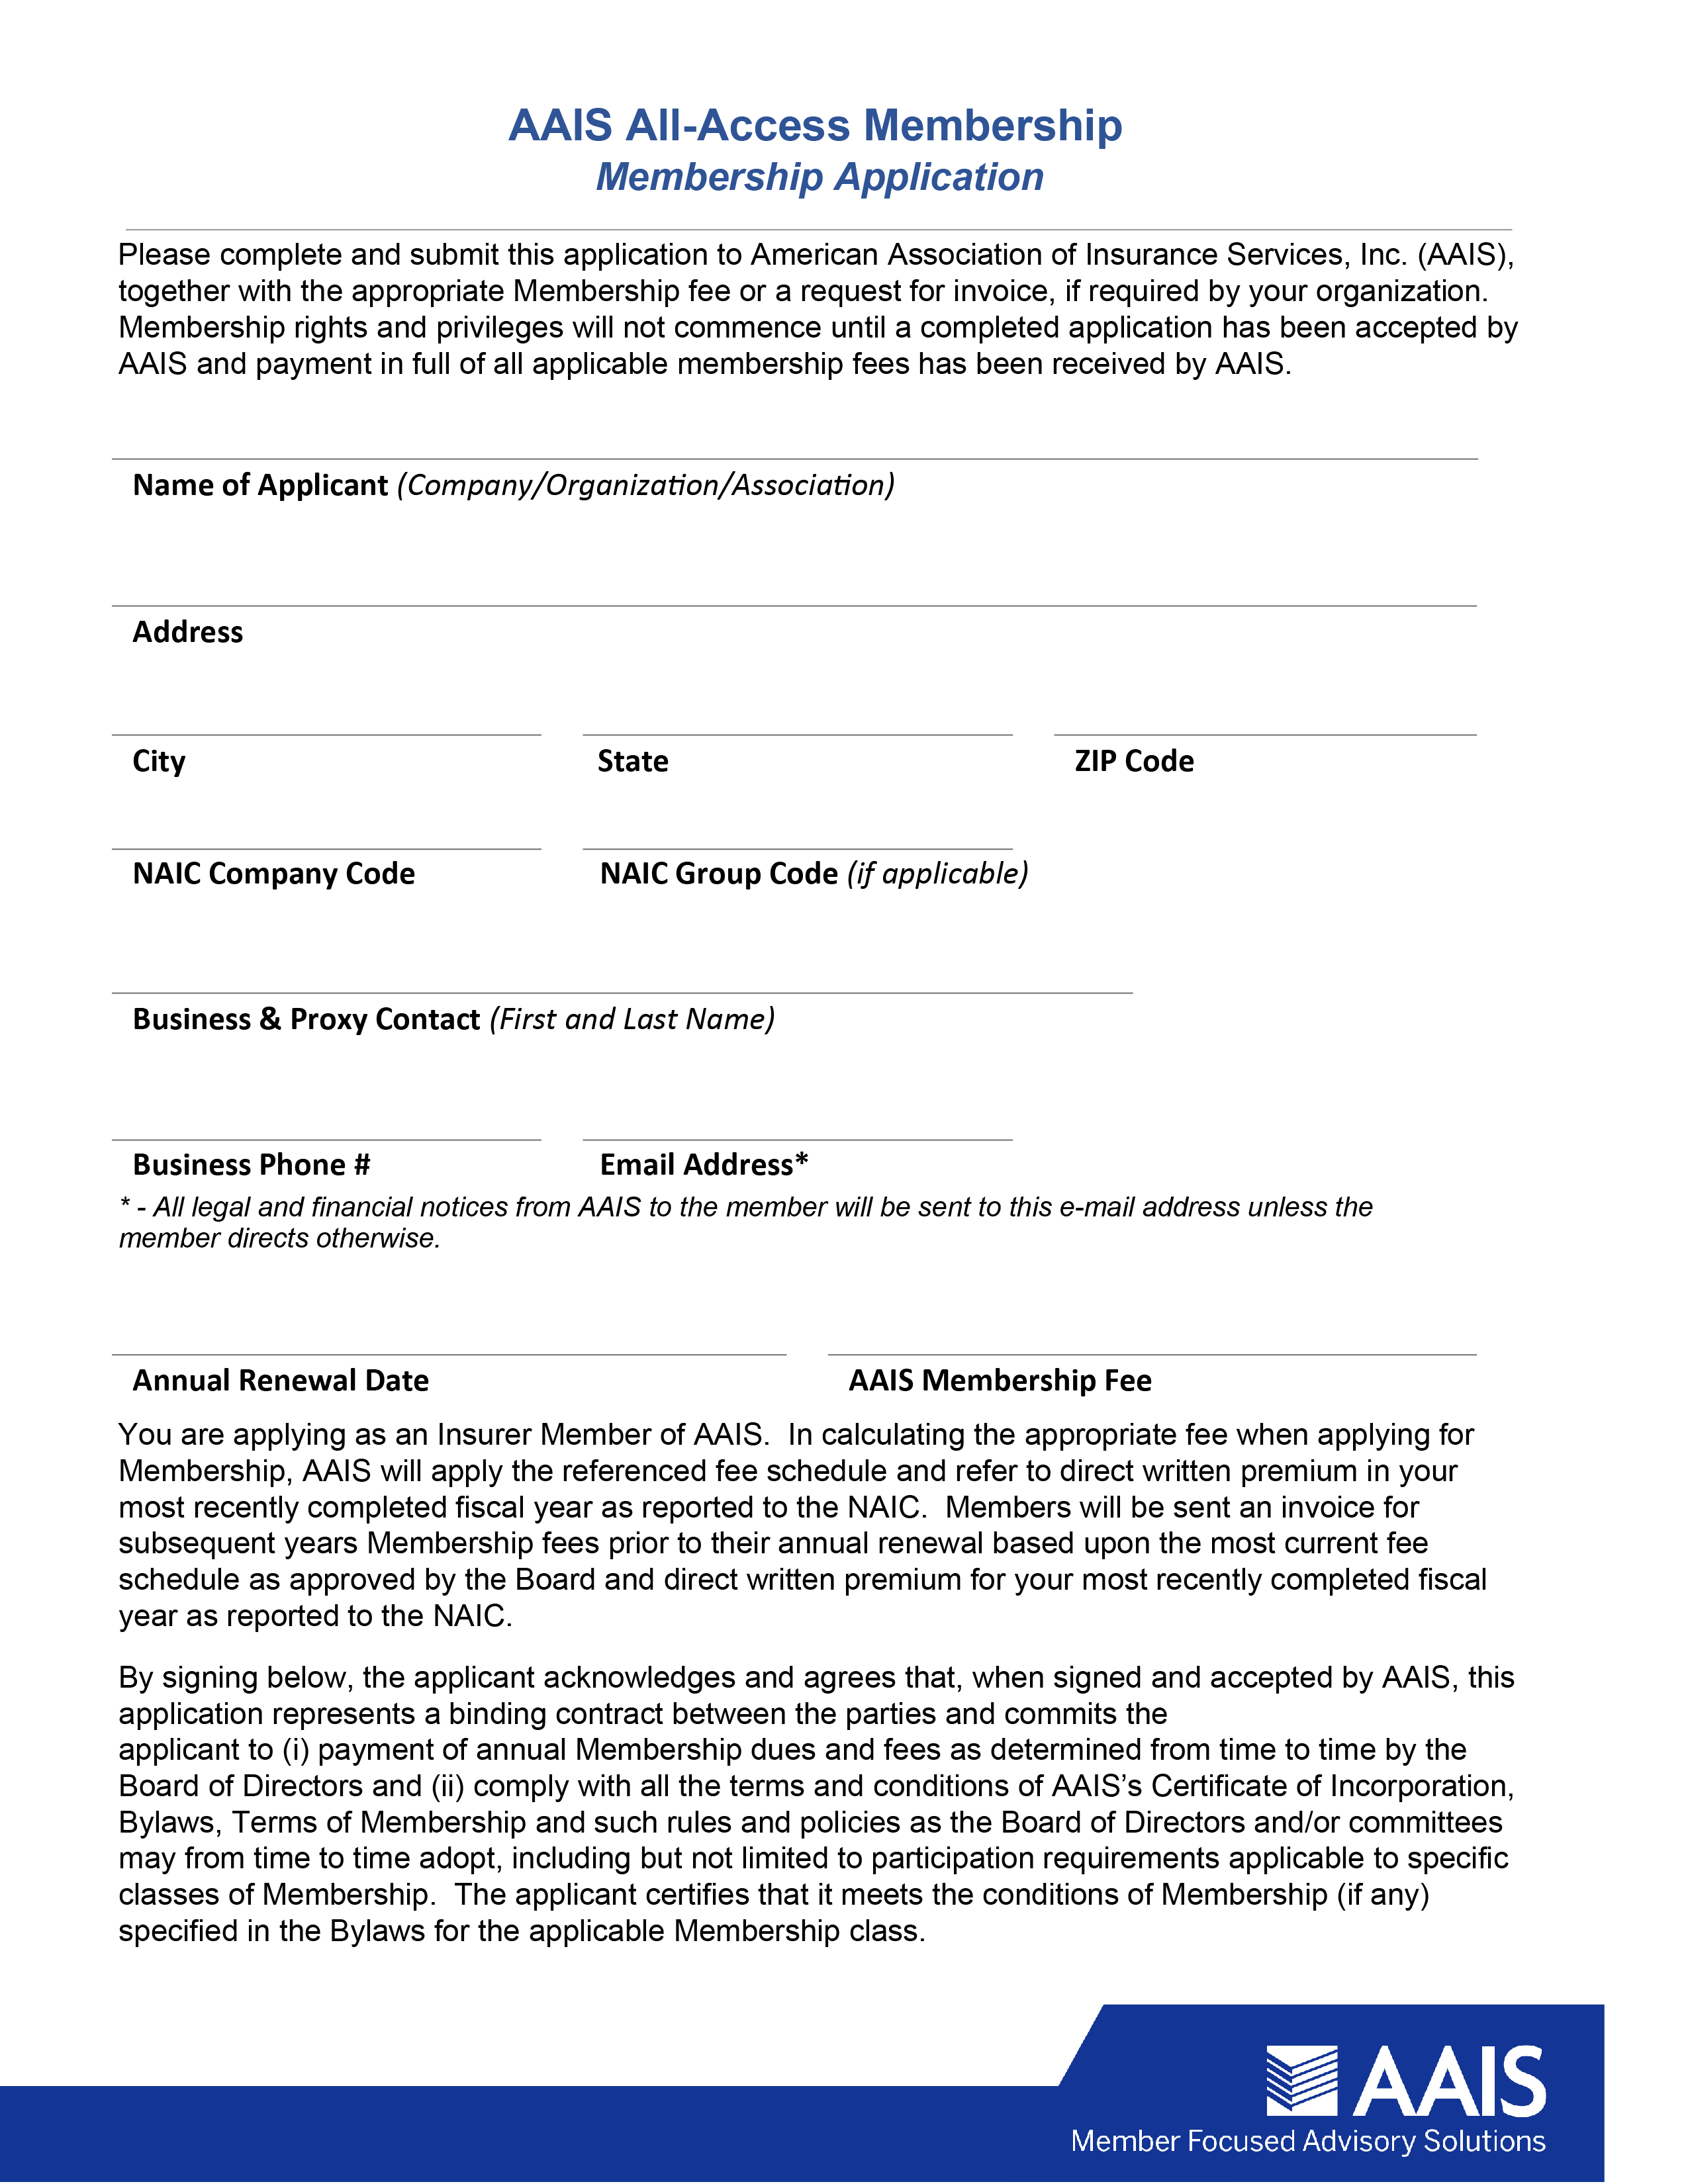 AAIS Membership Application